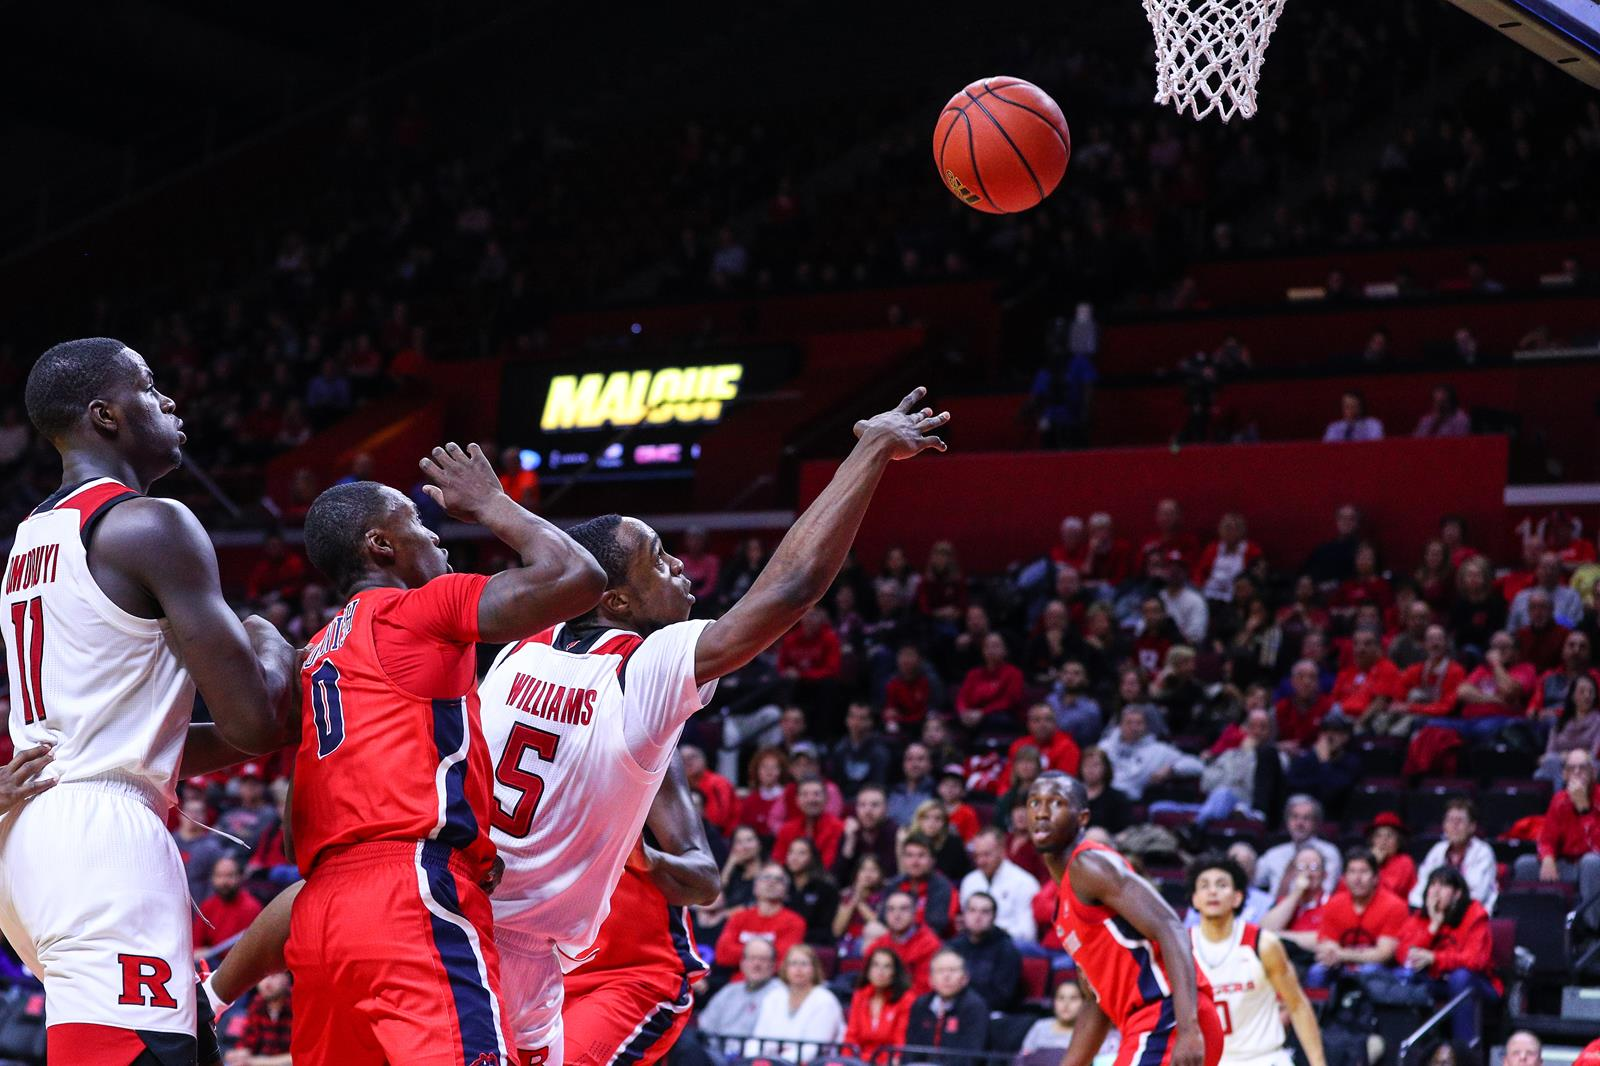 Image result for College Basketball Rutgers Mike